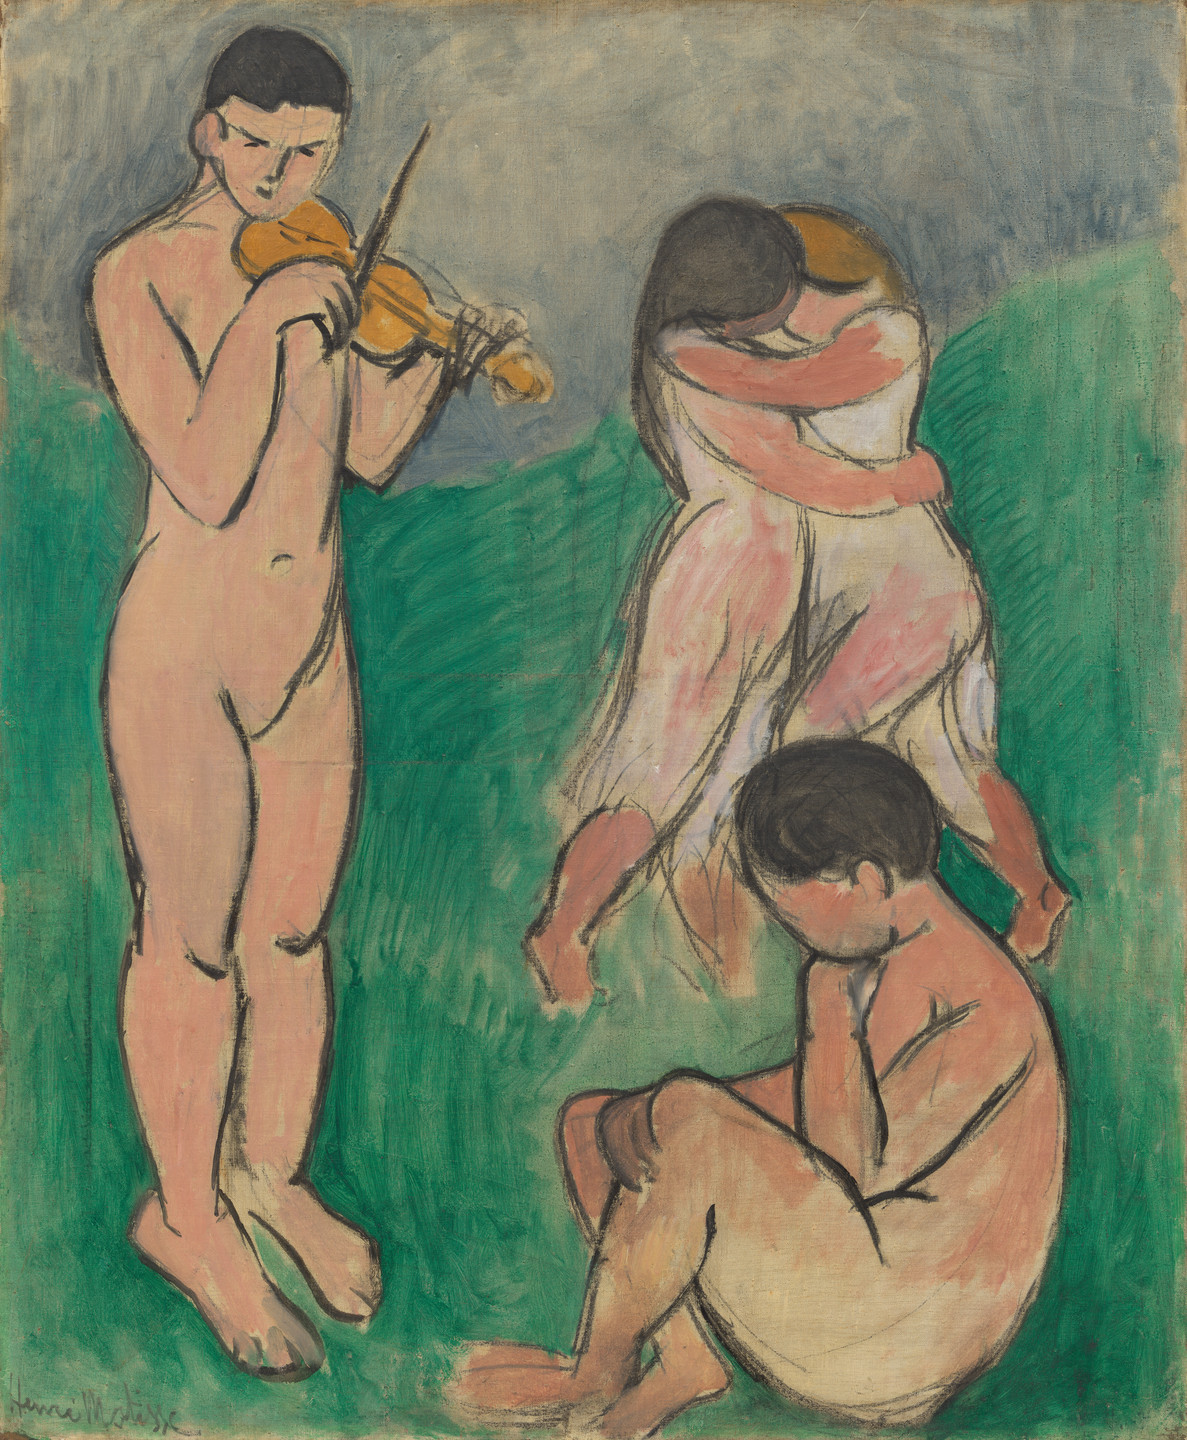 Henri Matisse. Music (Sketch). Collioure, spring-summer 1907